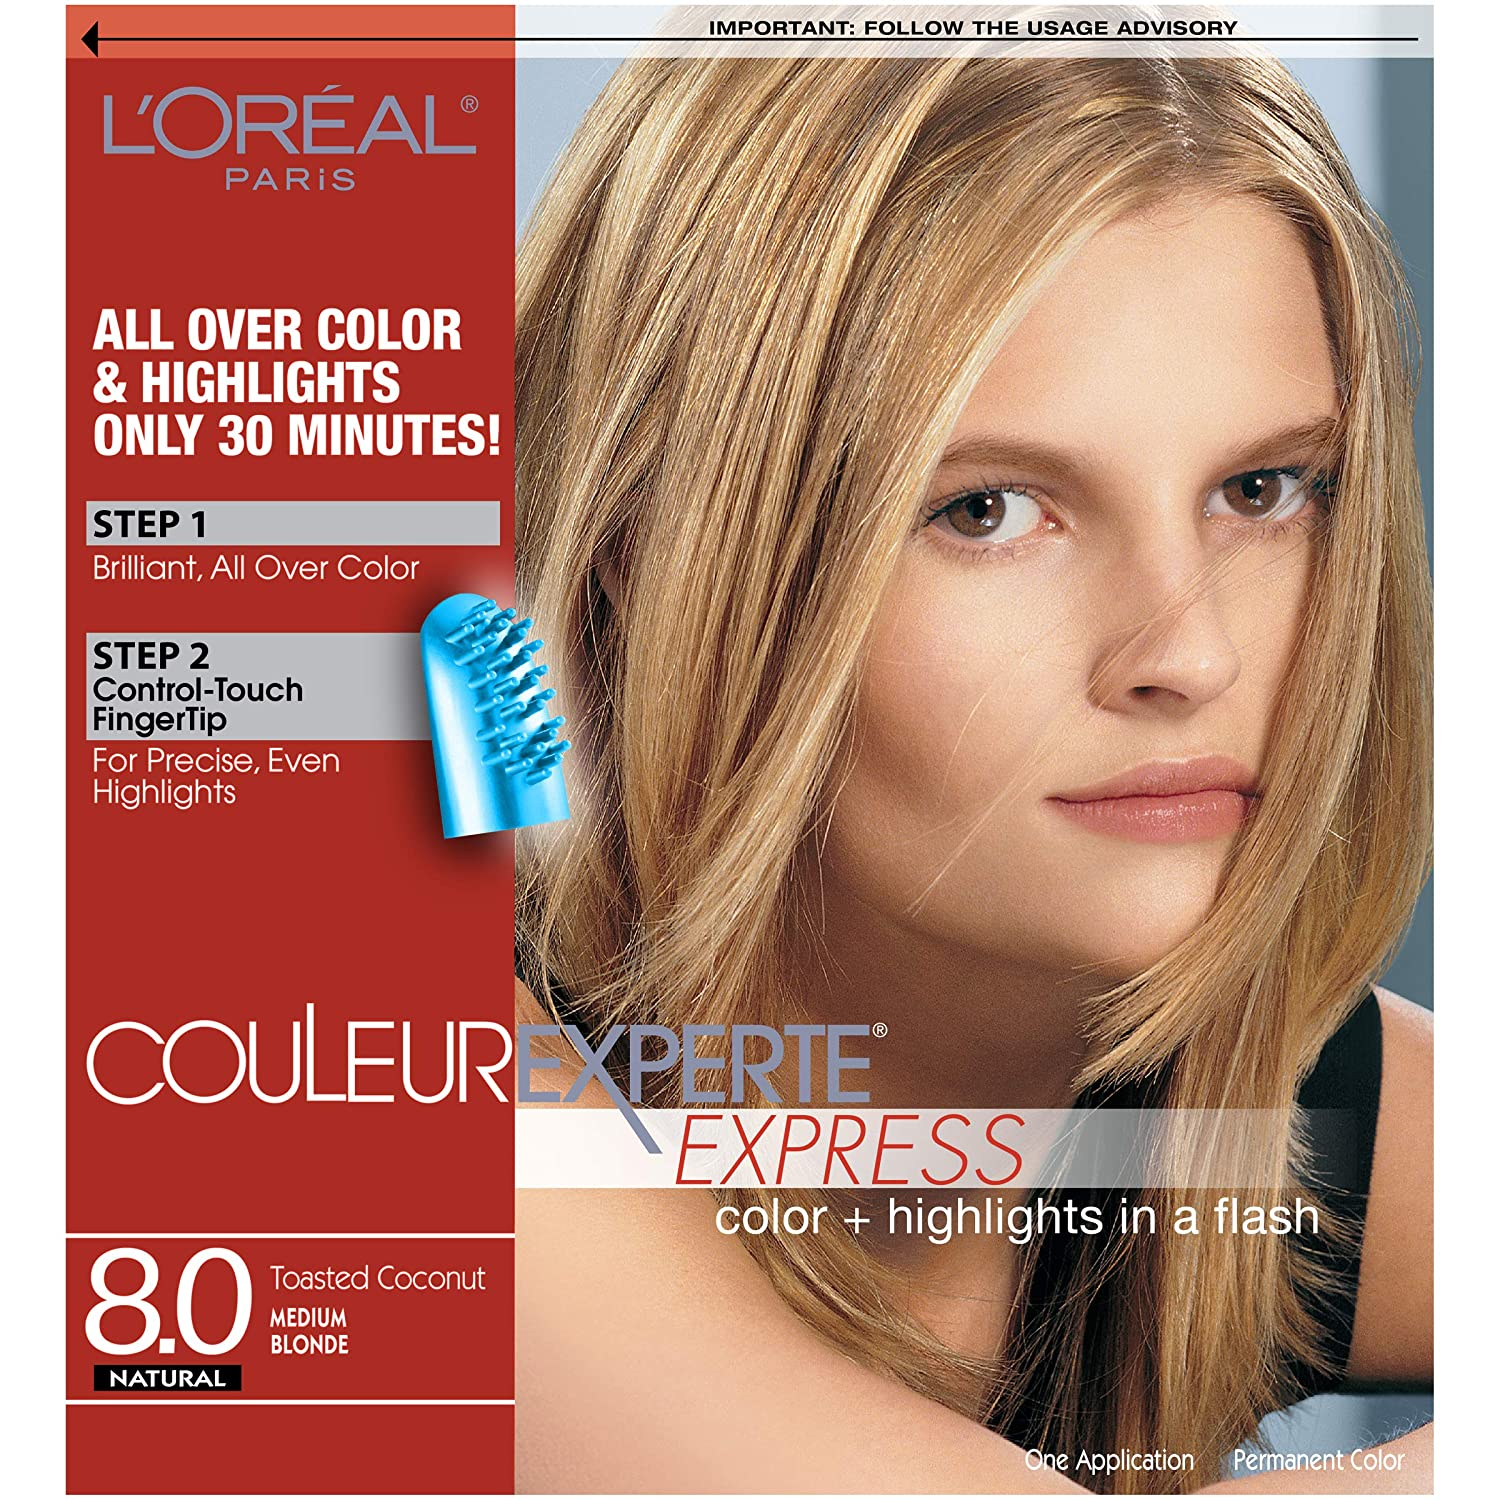 L'Oreal Paris Couleur Experte 2-Step Home Hair Color & Highlights Kit, Toasted Coconut : Chemical Hair Dyes : Beauty